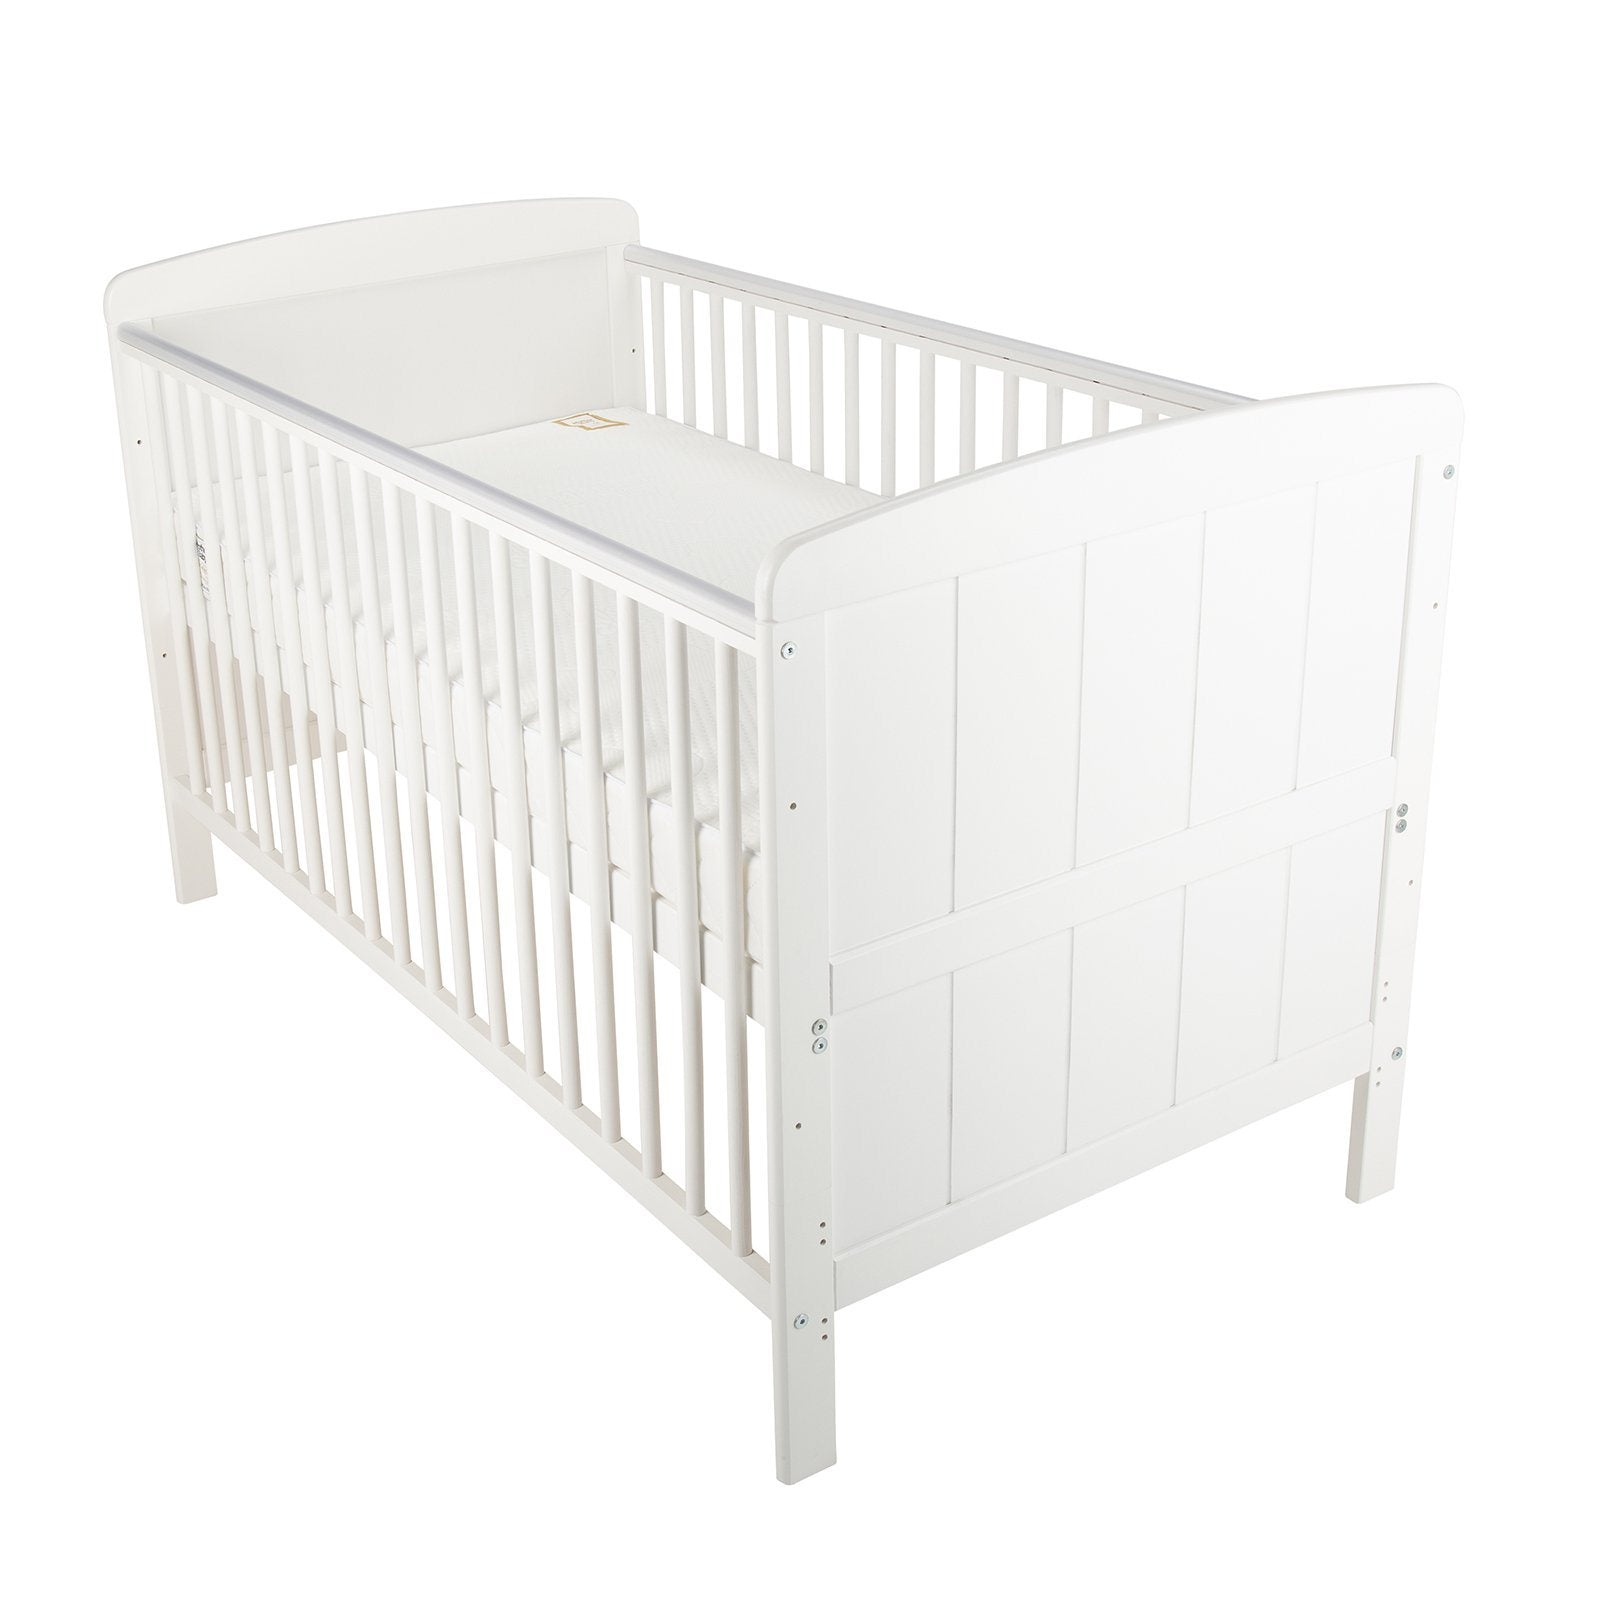 Juliet Cot Bed White cuddleco